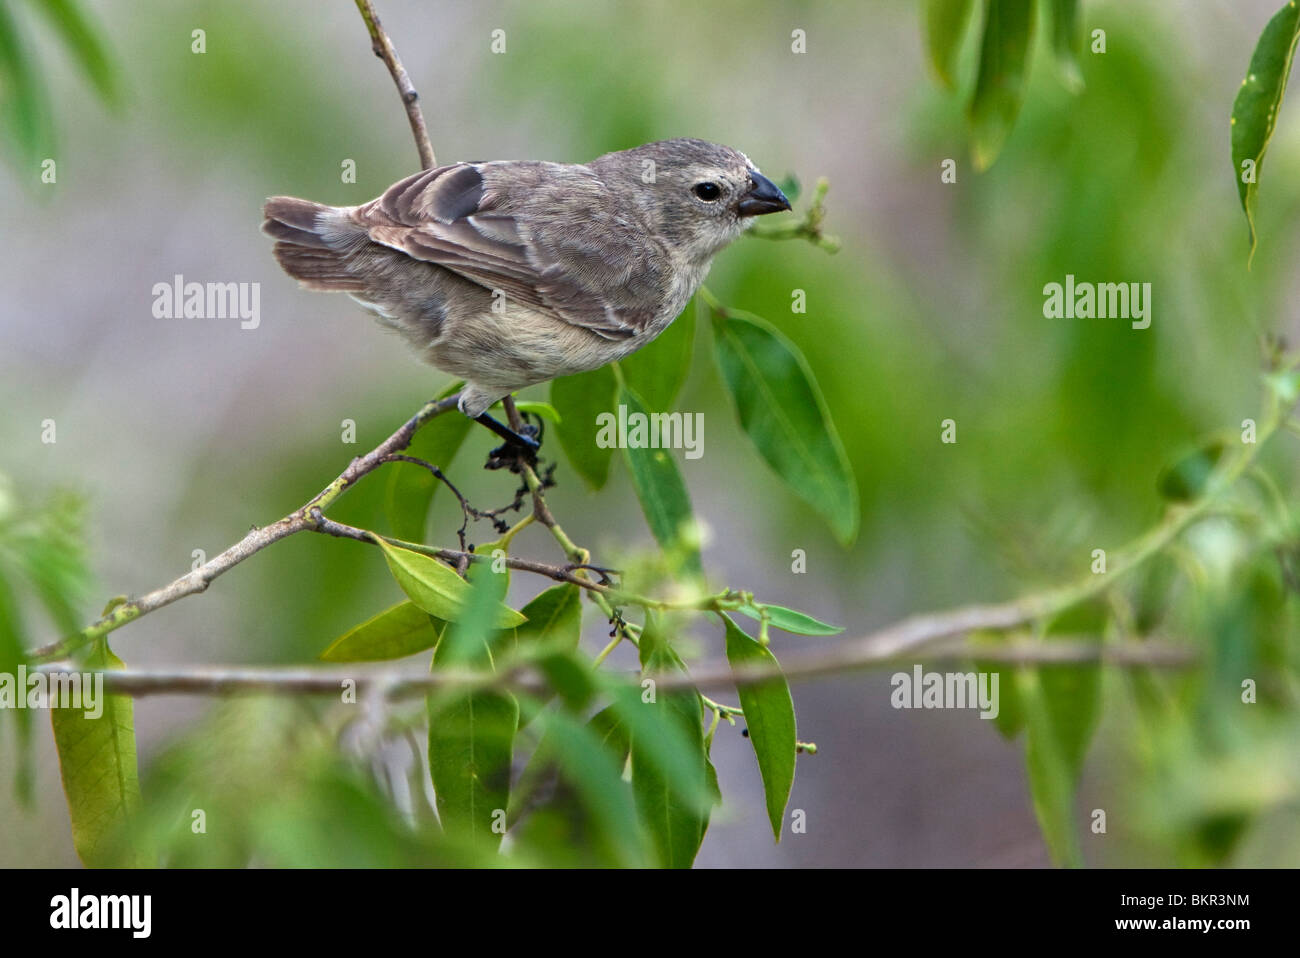 Galapagos Islands, A medium tree finch which is endemic to Floreana island. - Stock Image